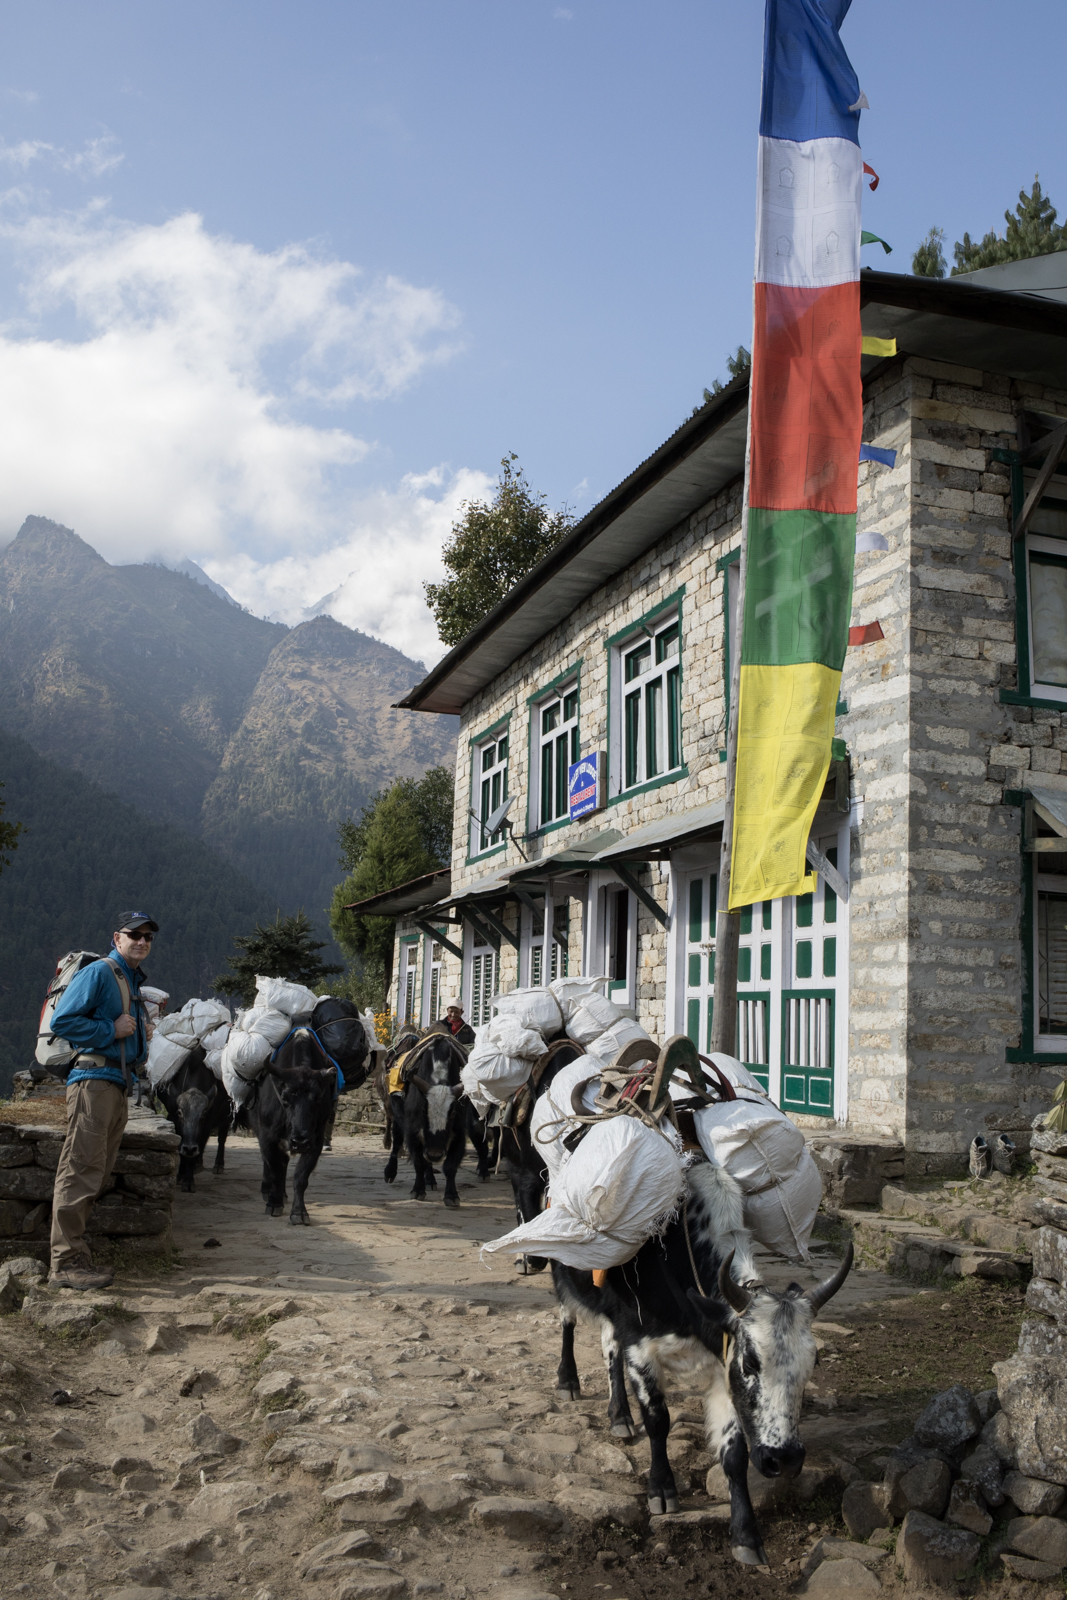 Ambrose stands to the side of the path as a group of Dzo carry supplies back to Lukla.  Dzo are a hybrid of cattle and yaks and can be found commonly in the lower altitude regions of the Everest valley.